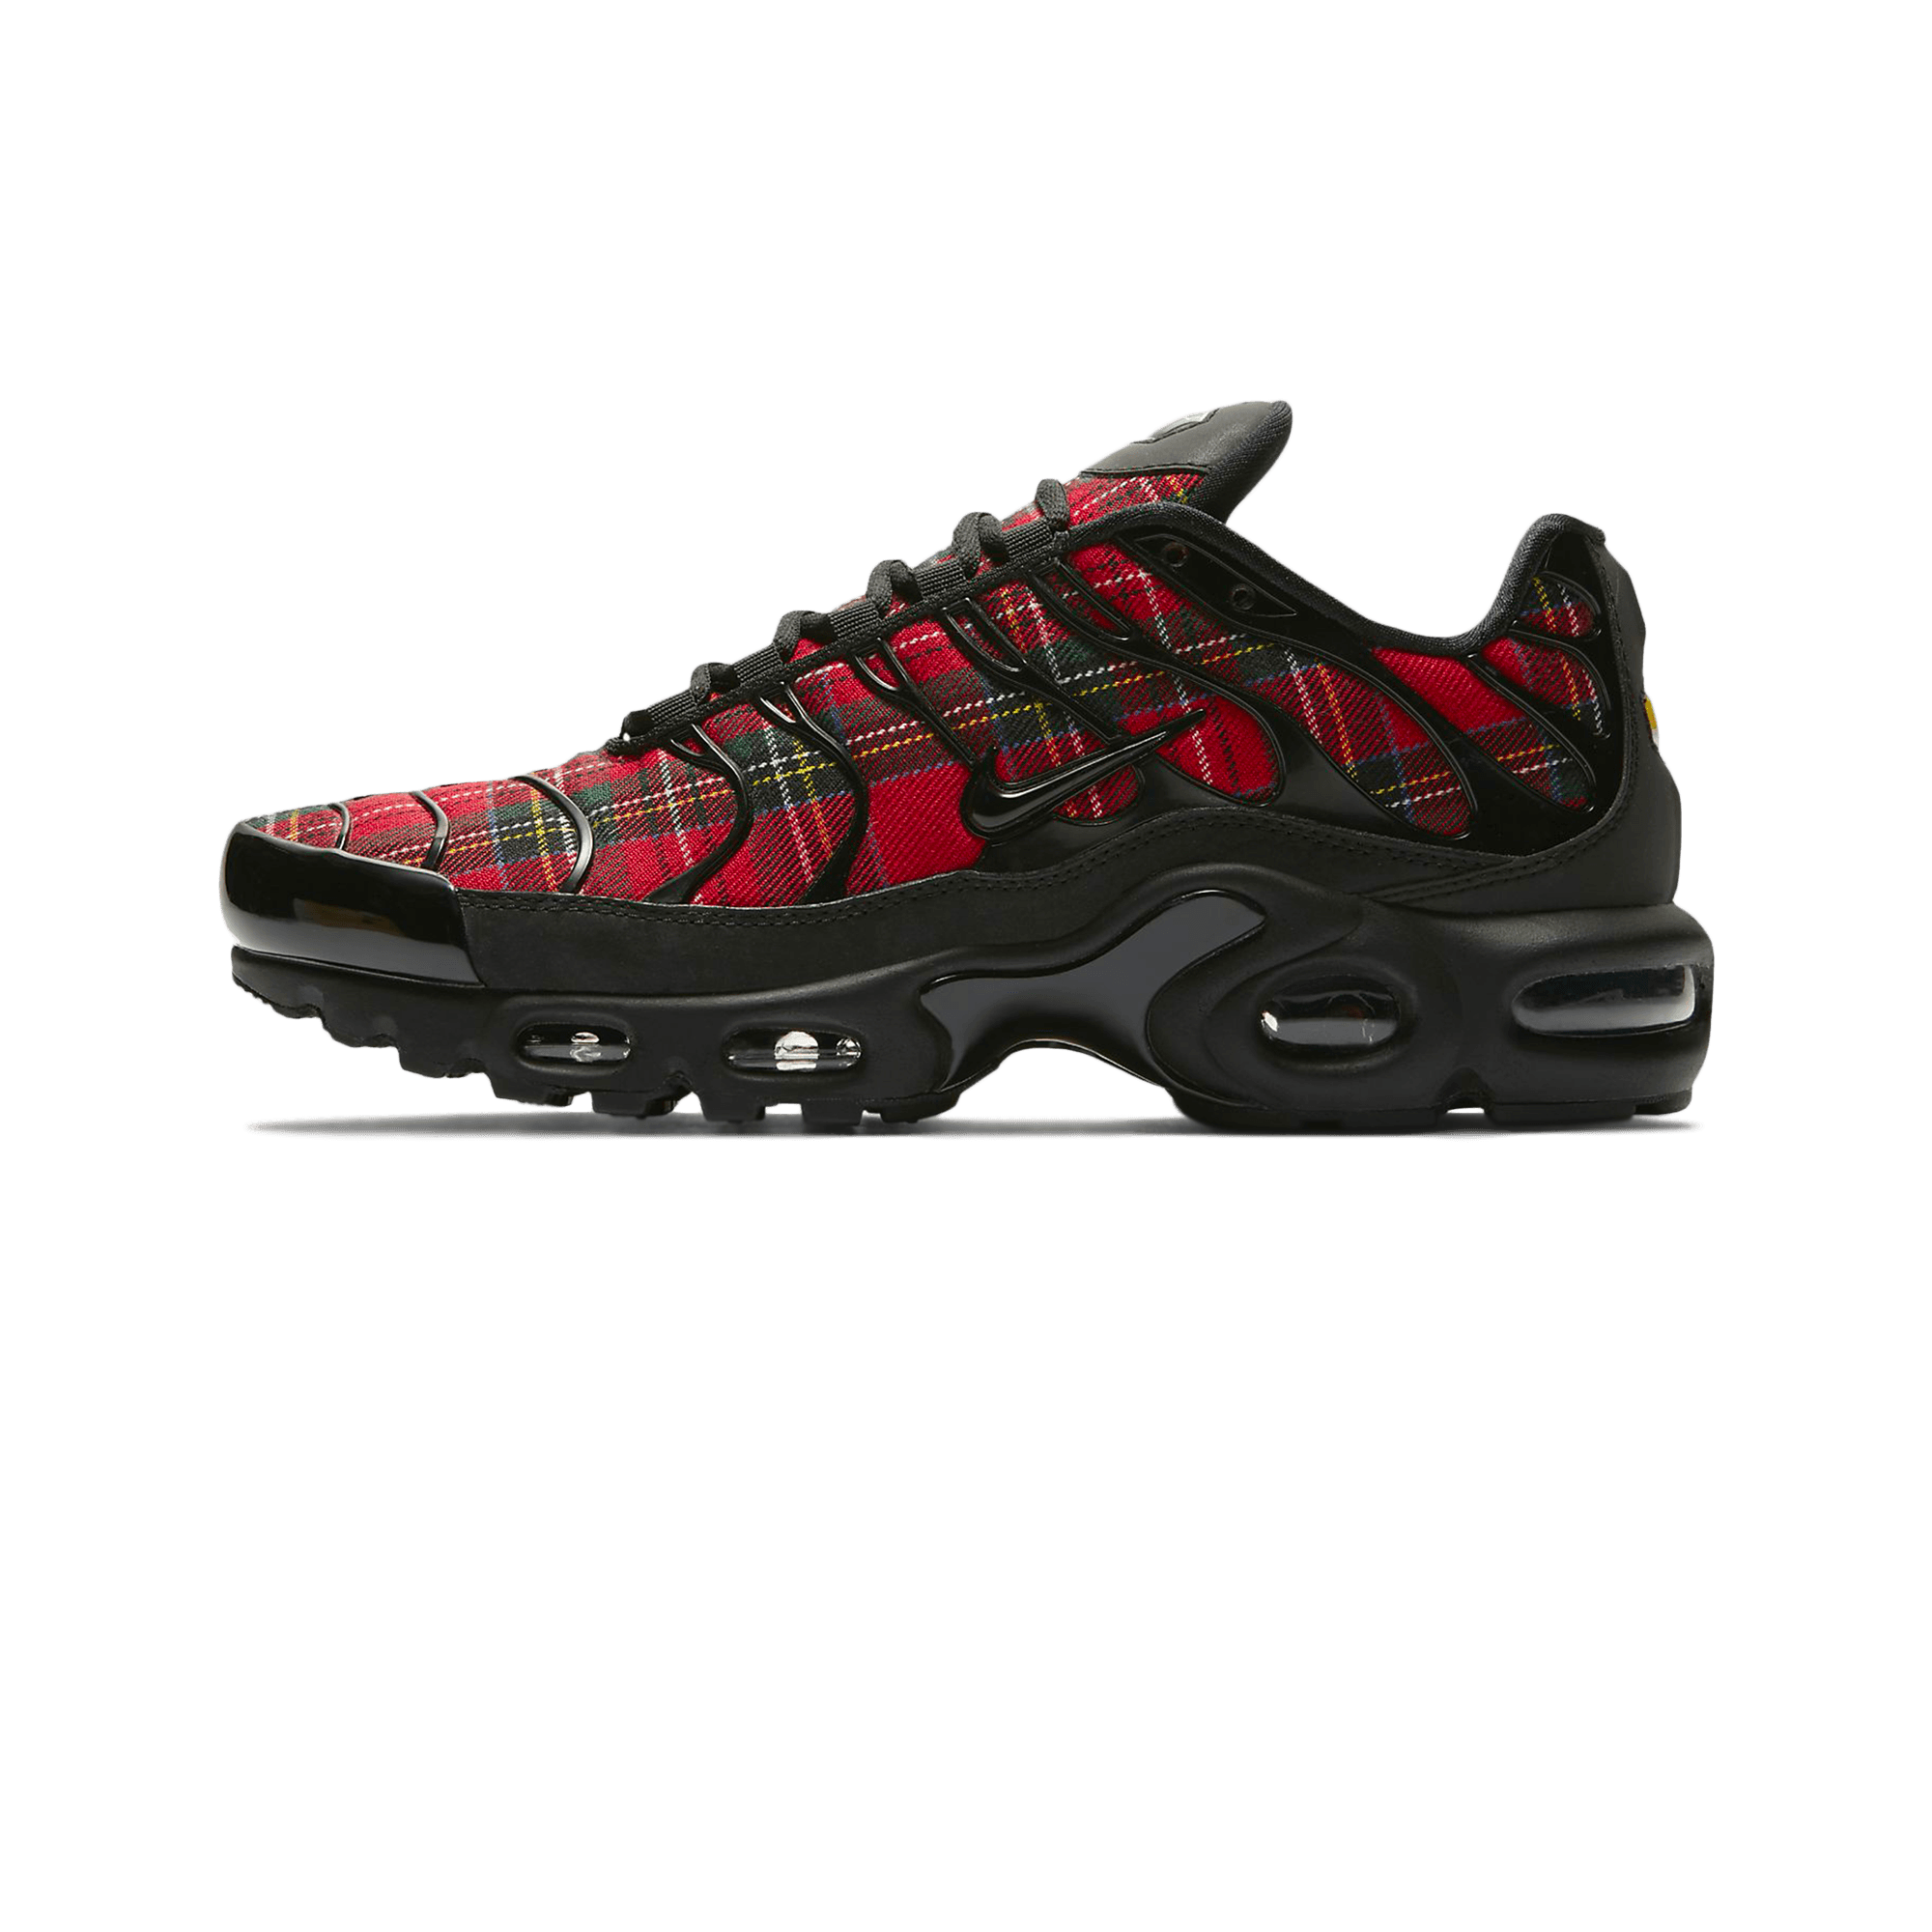 reputable site 40749 c579a Nike Air Max Plus TN SE black/unversity red - Woman | Holypopstore.com